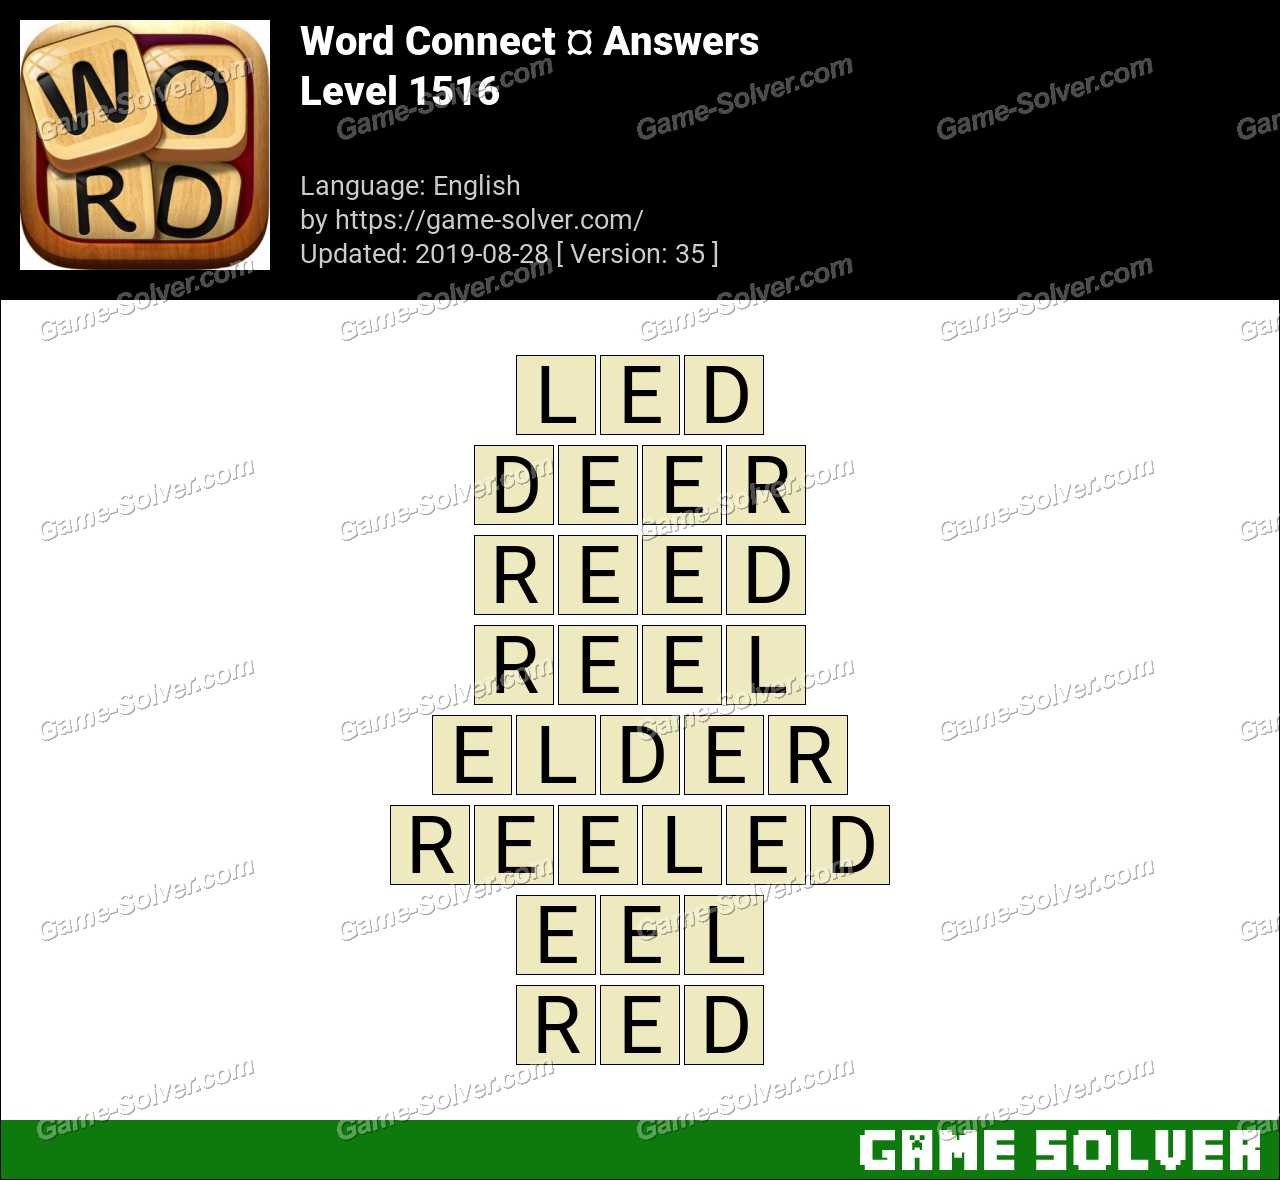 Word Connect Level 1516 Answers